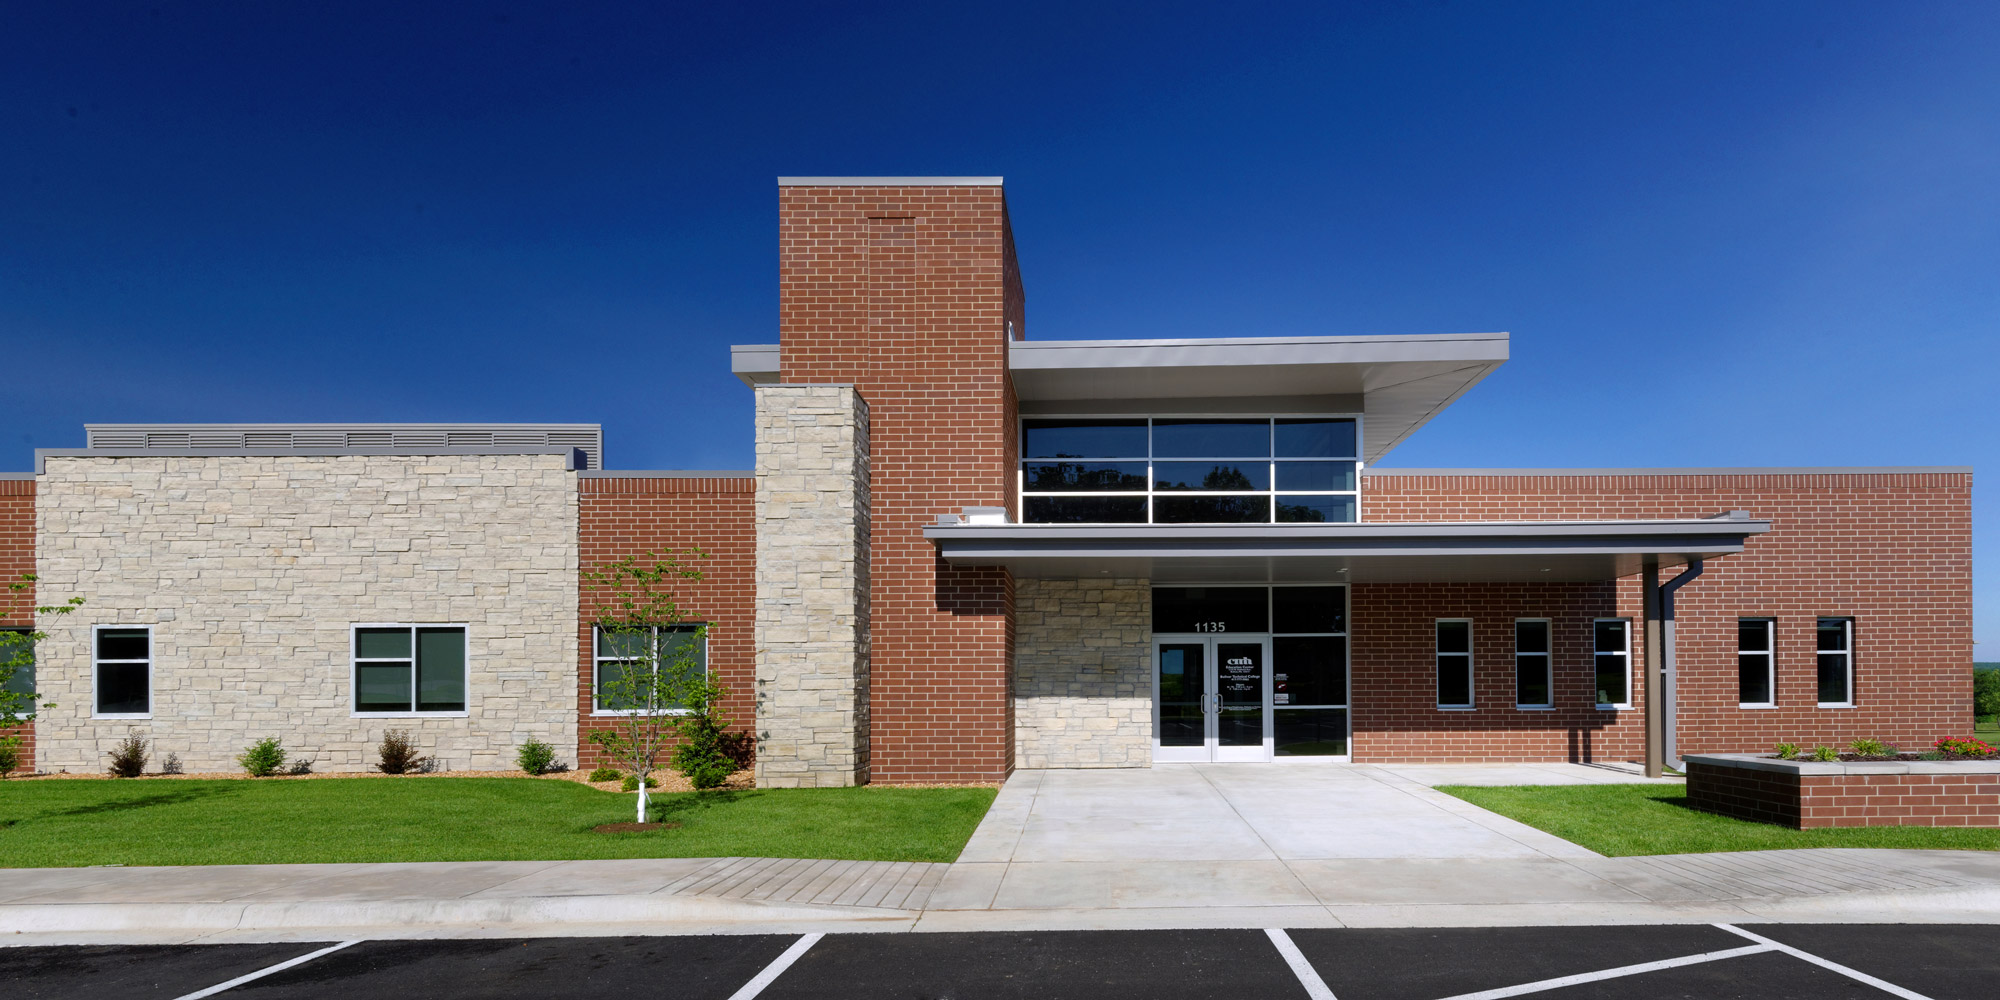 Boliver-Technical-College-H-Design-Exterior-01.jpg